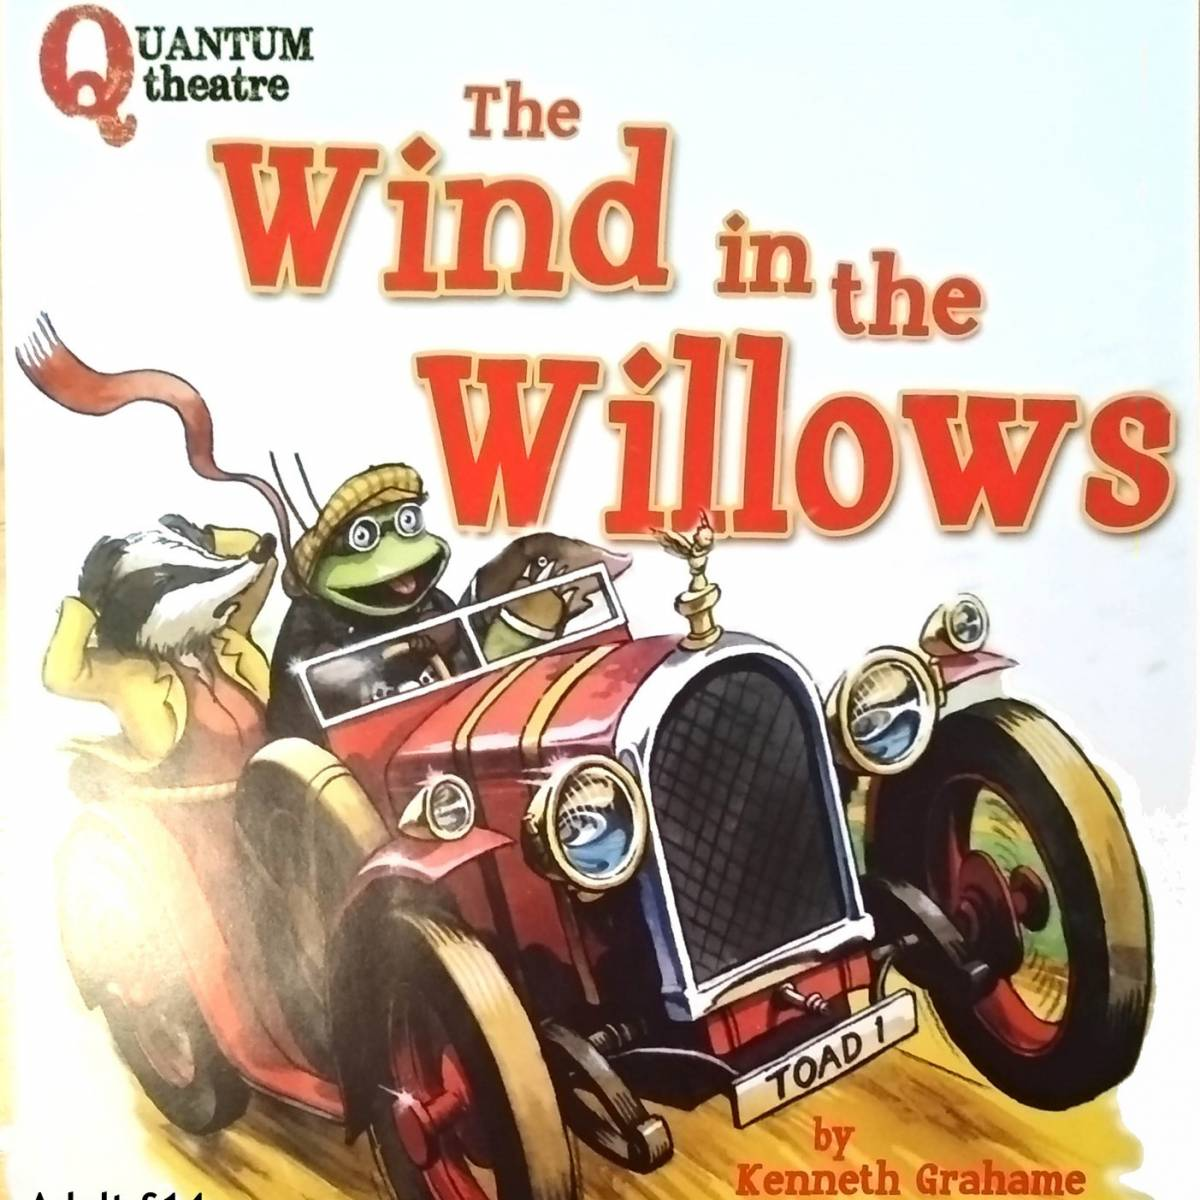 Image of The Wind in the Willows of toad driving a car